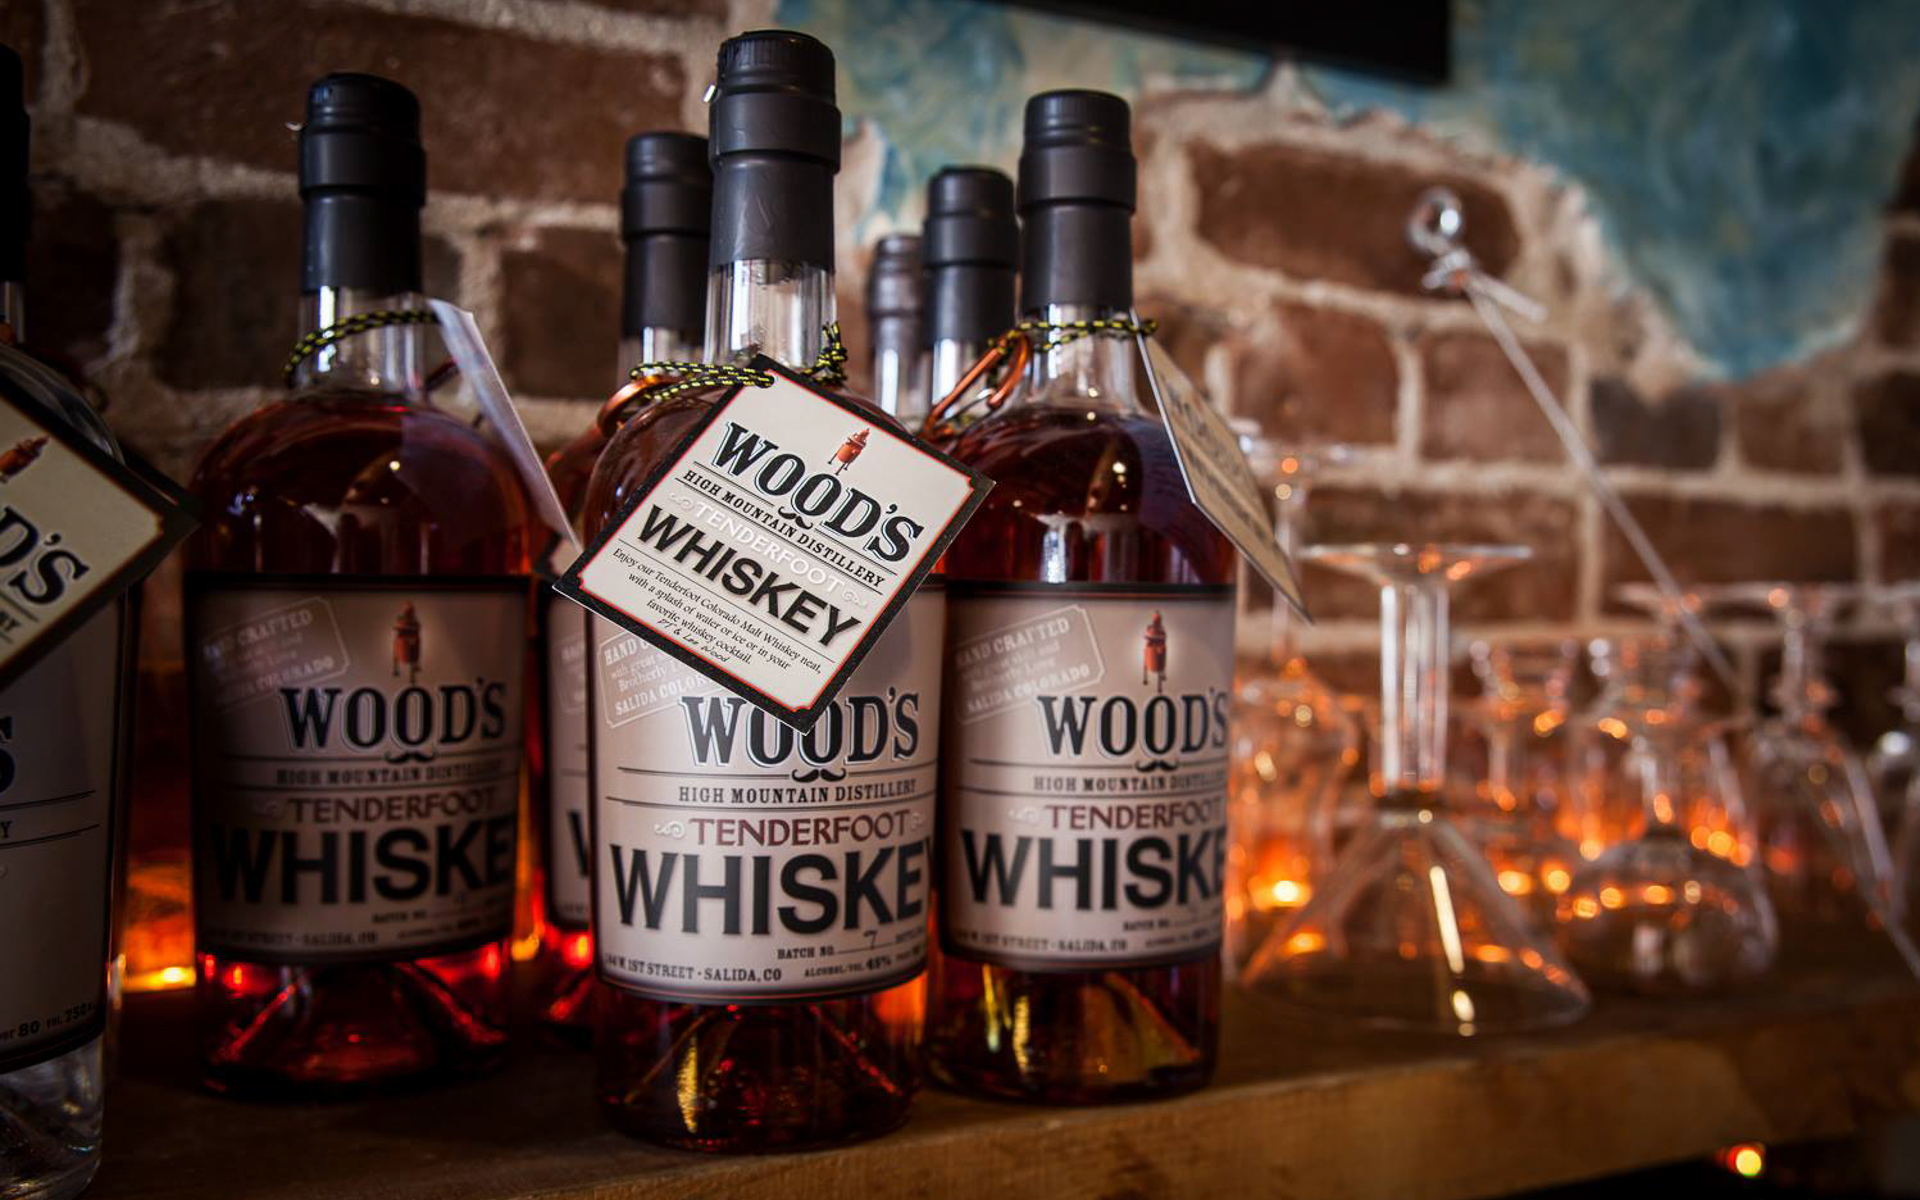 Love a good cocktail? Wood's High Mountain Distillery has you covered.